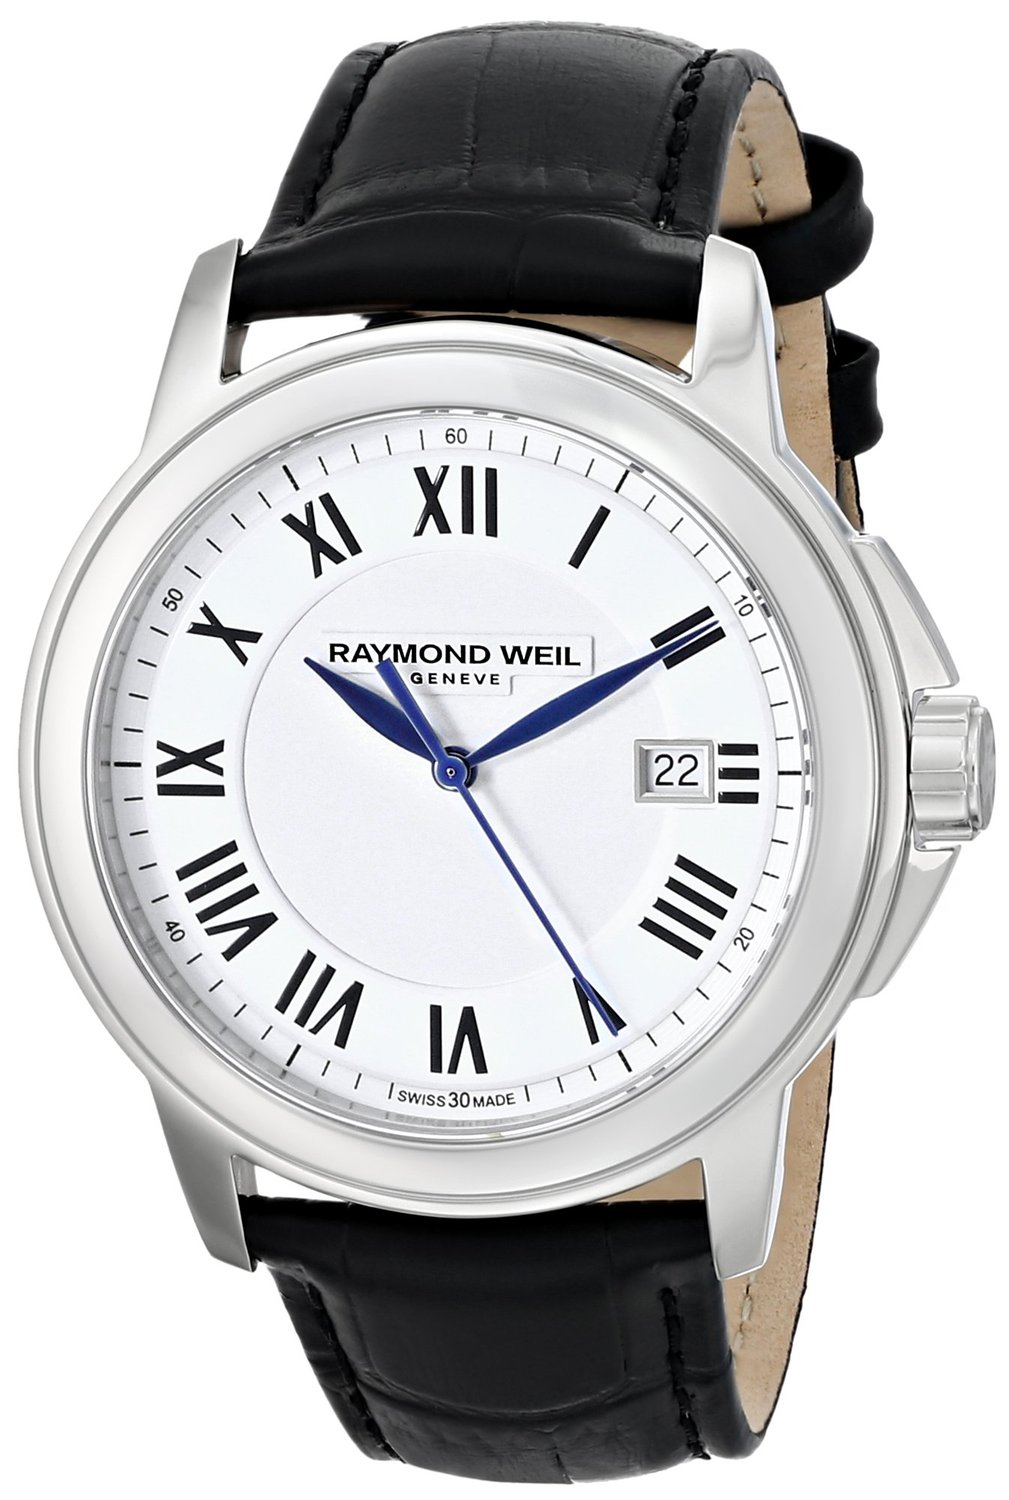 Raymond Weil 5478-STC-00300 40 Stainless Steel Case Black Silver Plated Stainless Steel Men's Watch